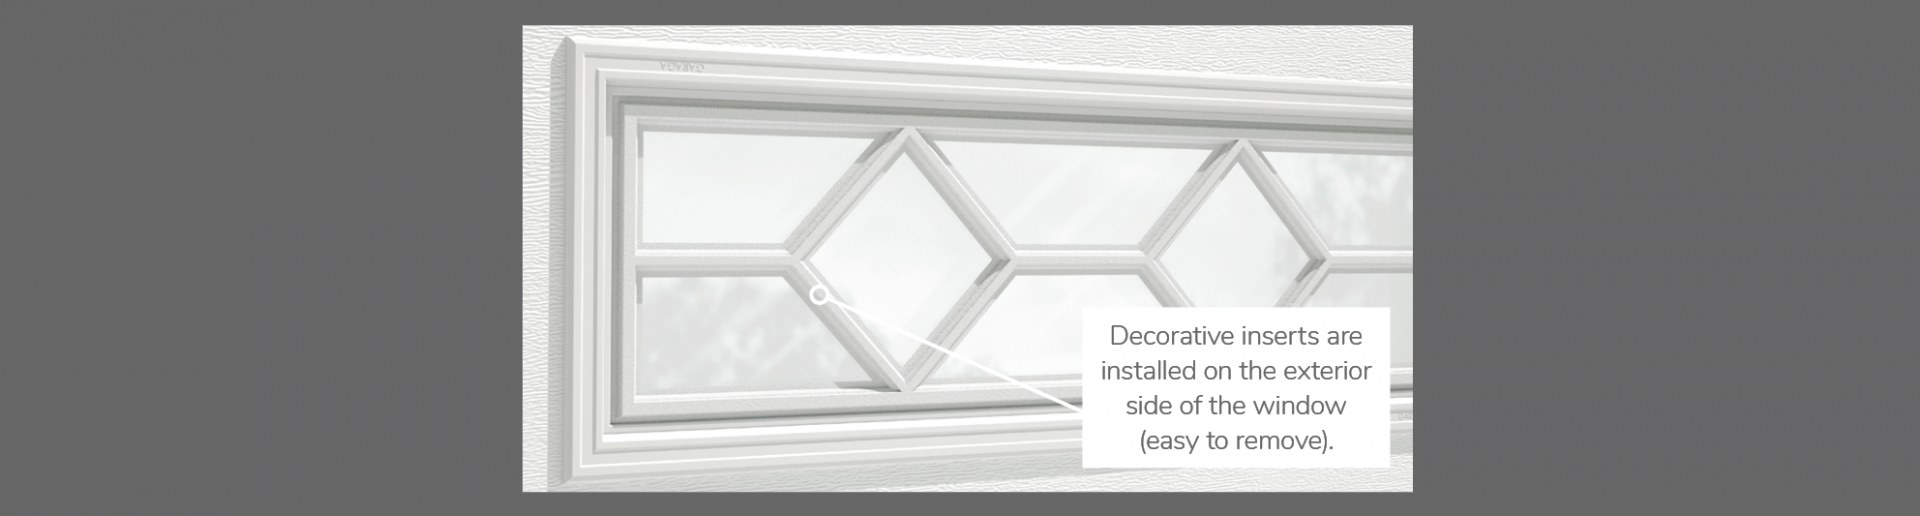 "Waterton Decorative Insert, 41"" x 16"", available for door 3 layers - Polystyrene, 2 layers - Polystyrene and Non-insulated"